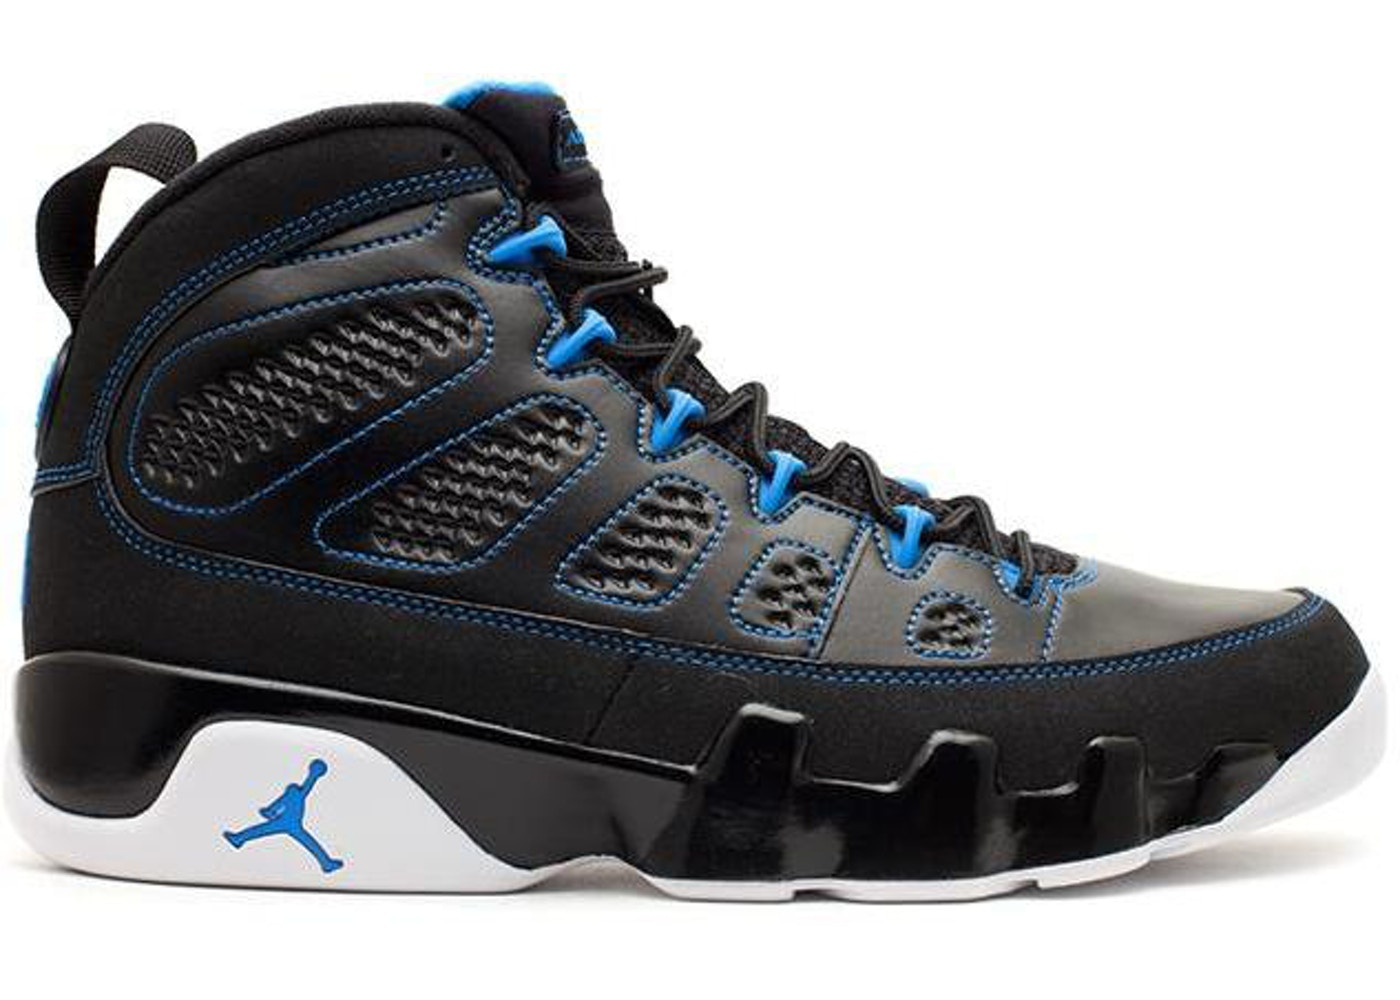 low priced 16b5f e5e28 Jordan 9 Retro Photo Blue